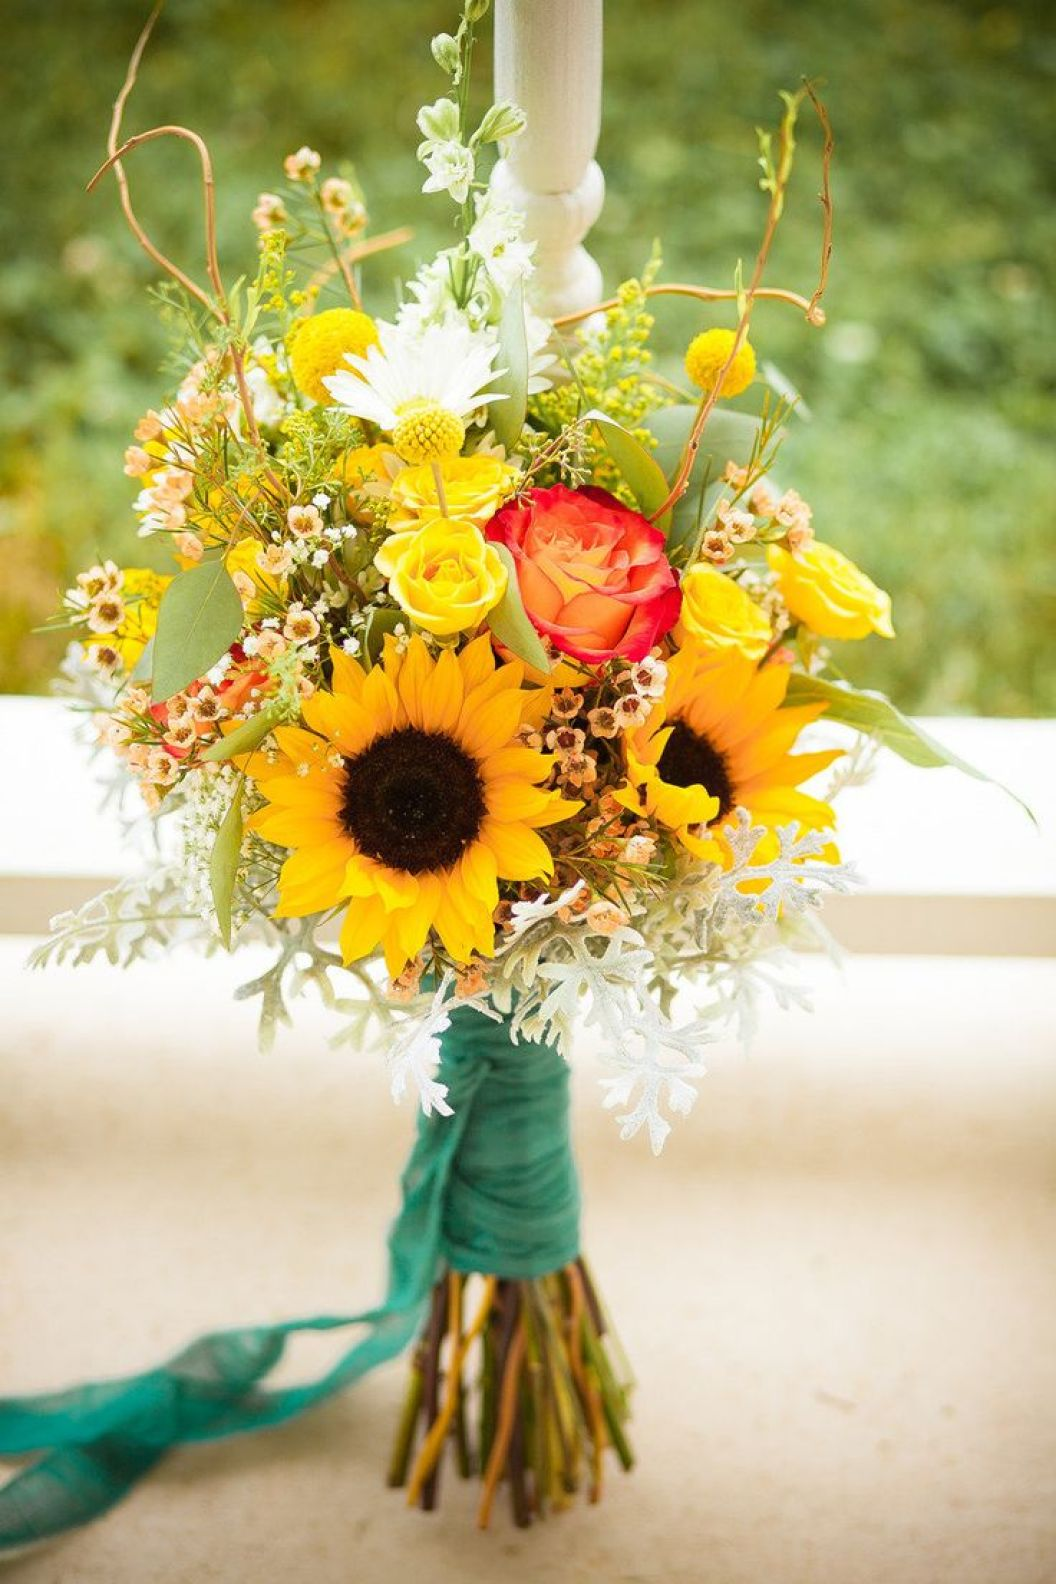 Bridesmaid Bouquets Sunflowers : Sunflower wedding bouquets summer and fall weddings